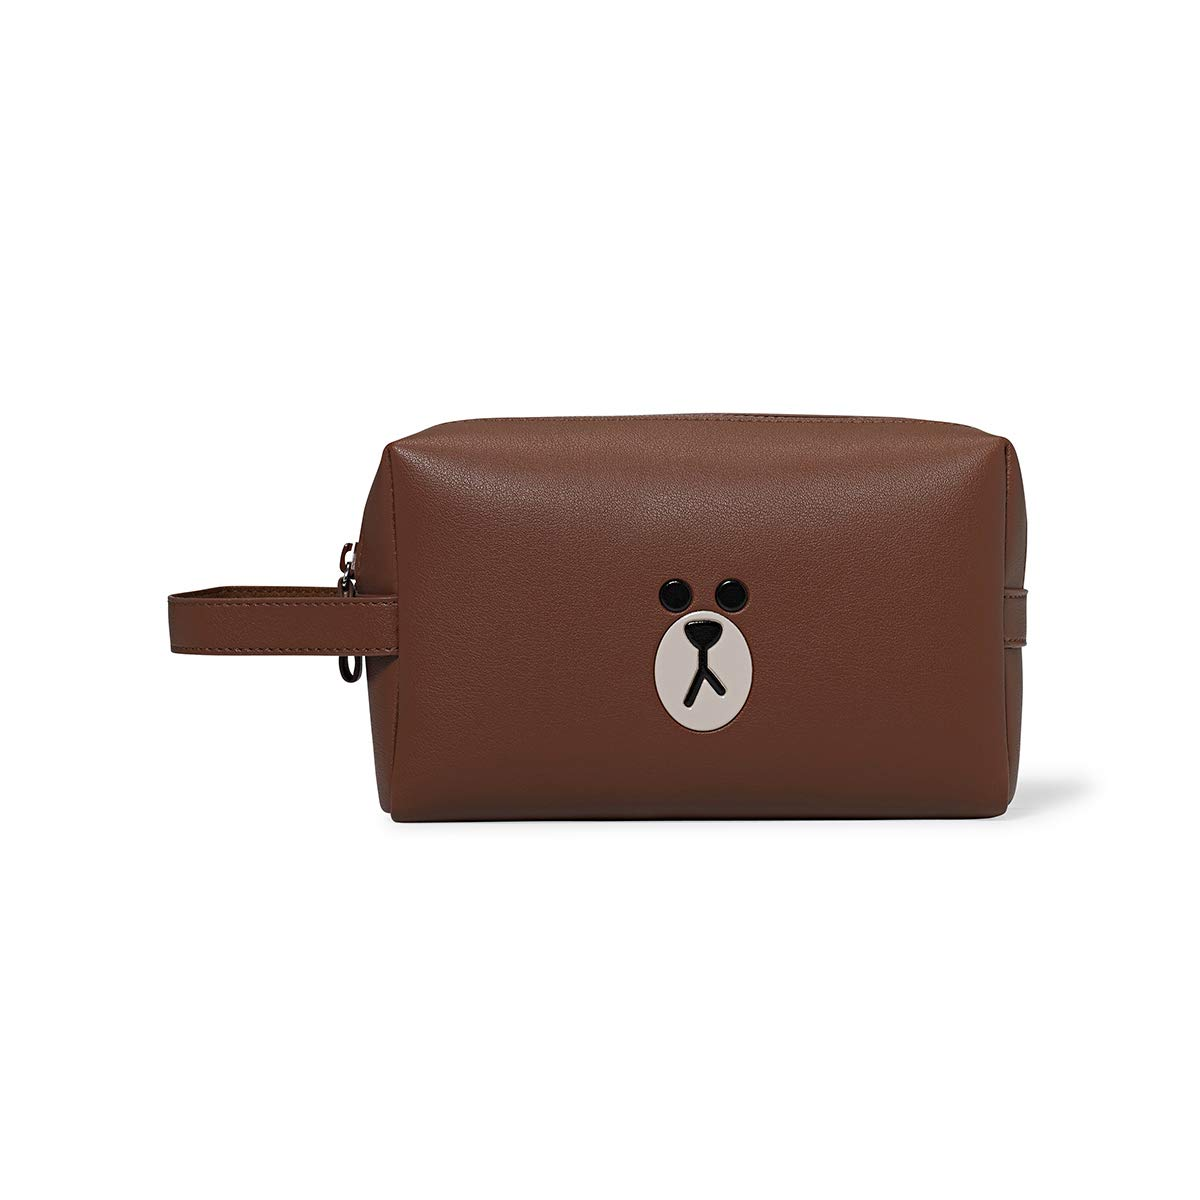 Line Friends Cosmetic Bag – BROWN Character Faux Leather Travel Pouch and Organizer for Toiletry and Makeup, Brown